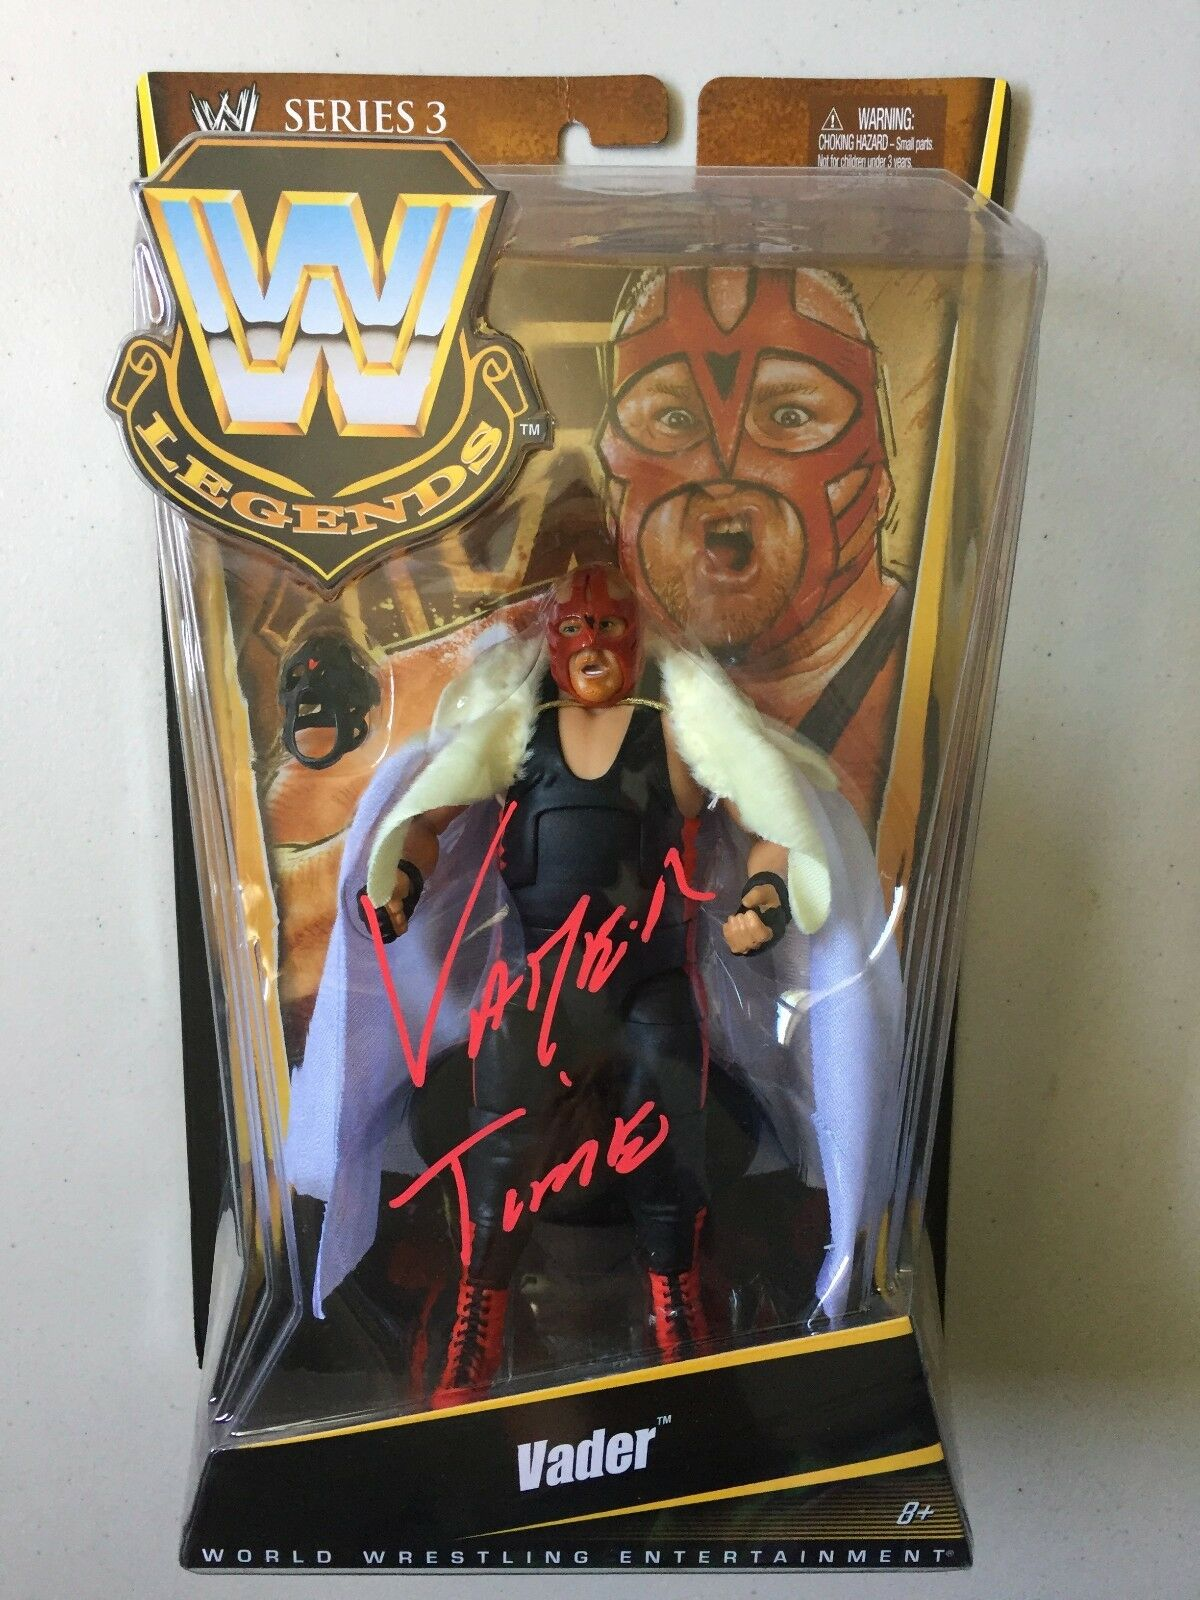 WWE Mattel Elite Legends VADER Autographed Signed Wrestling Figure WCW WWF